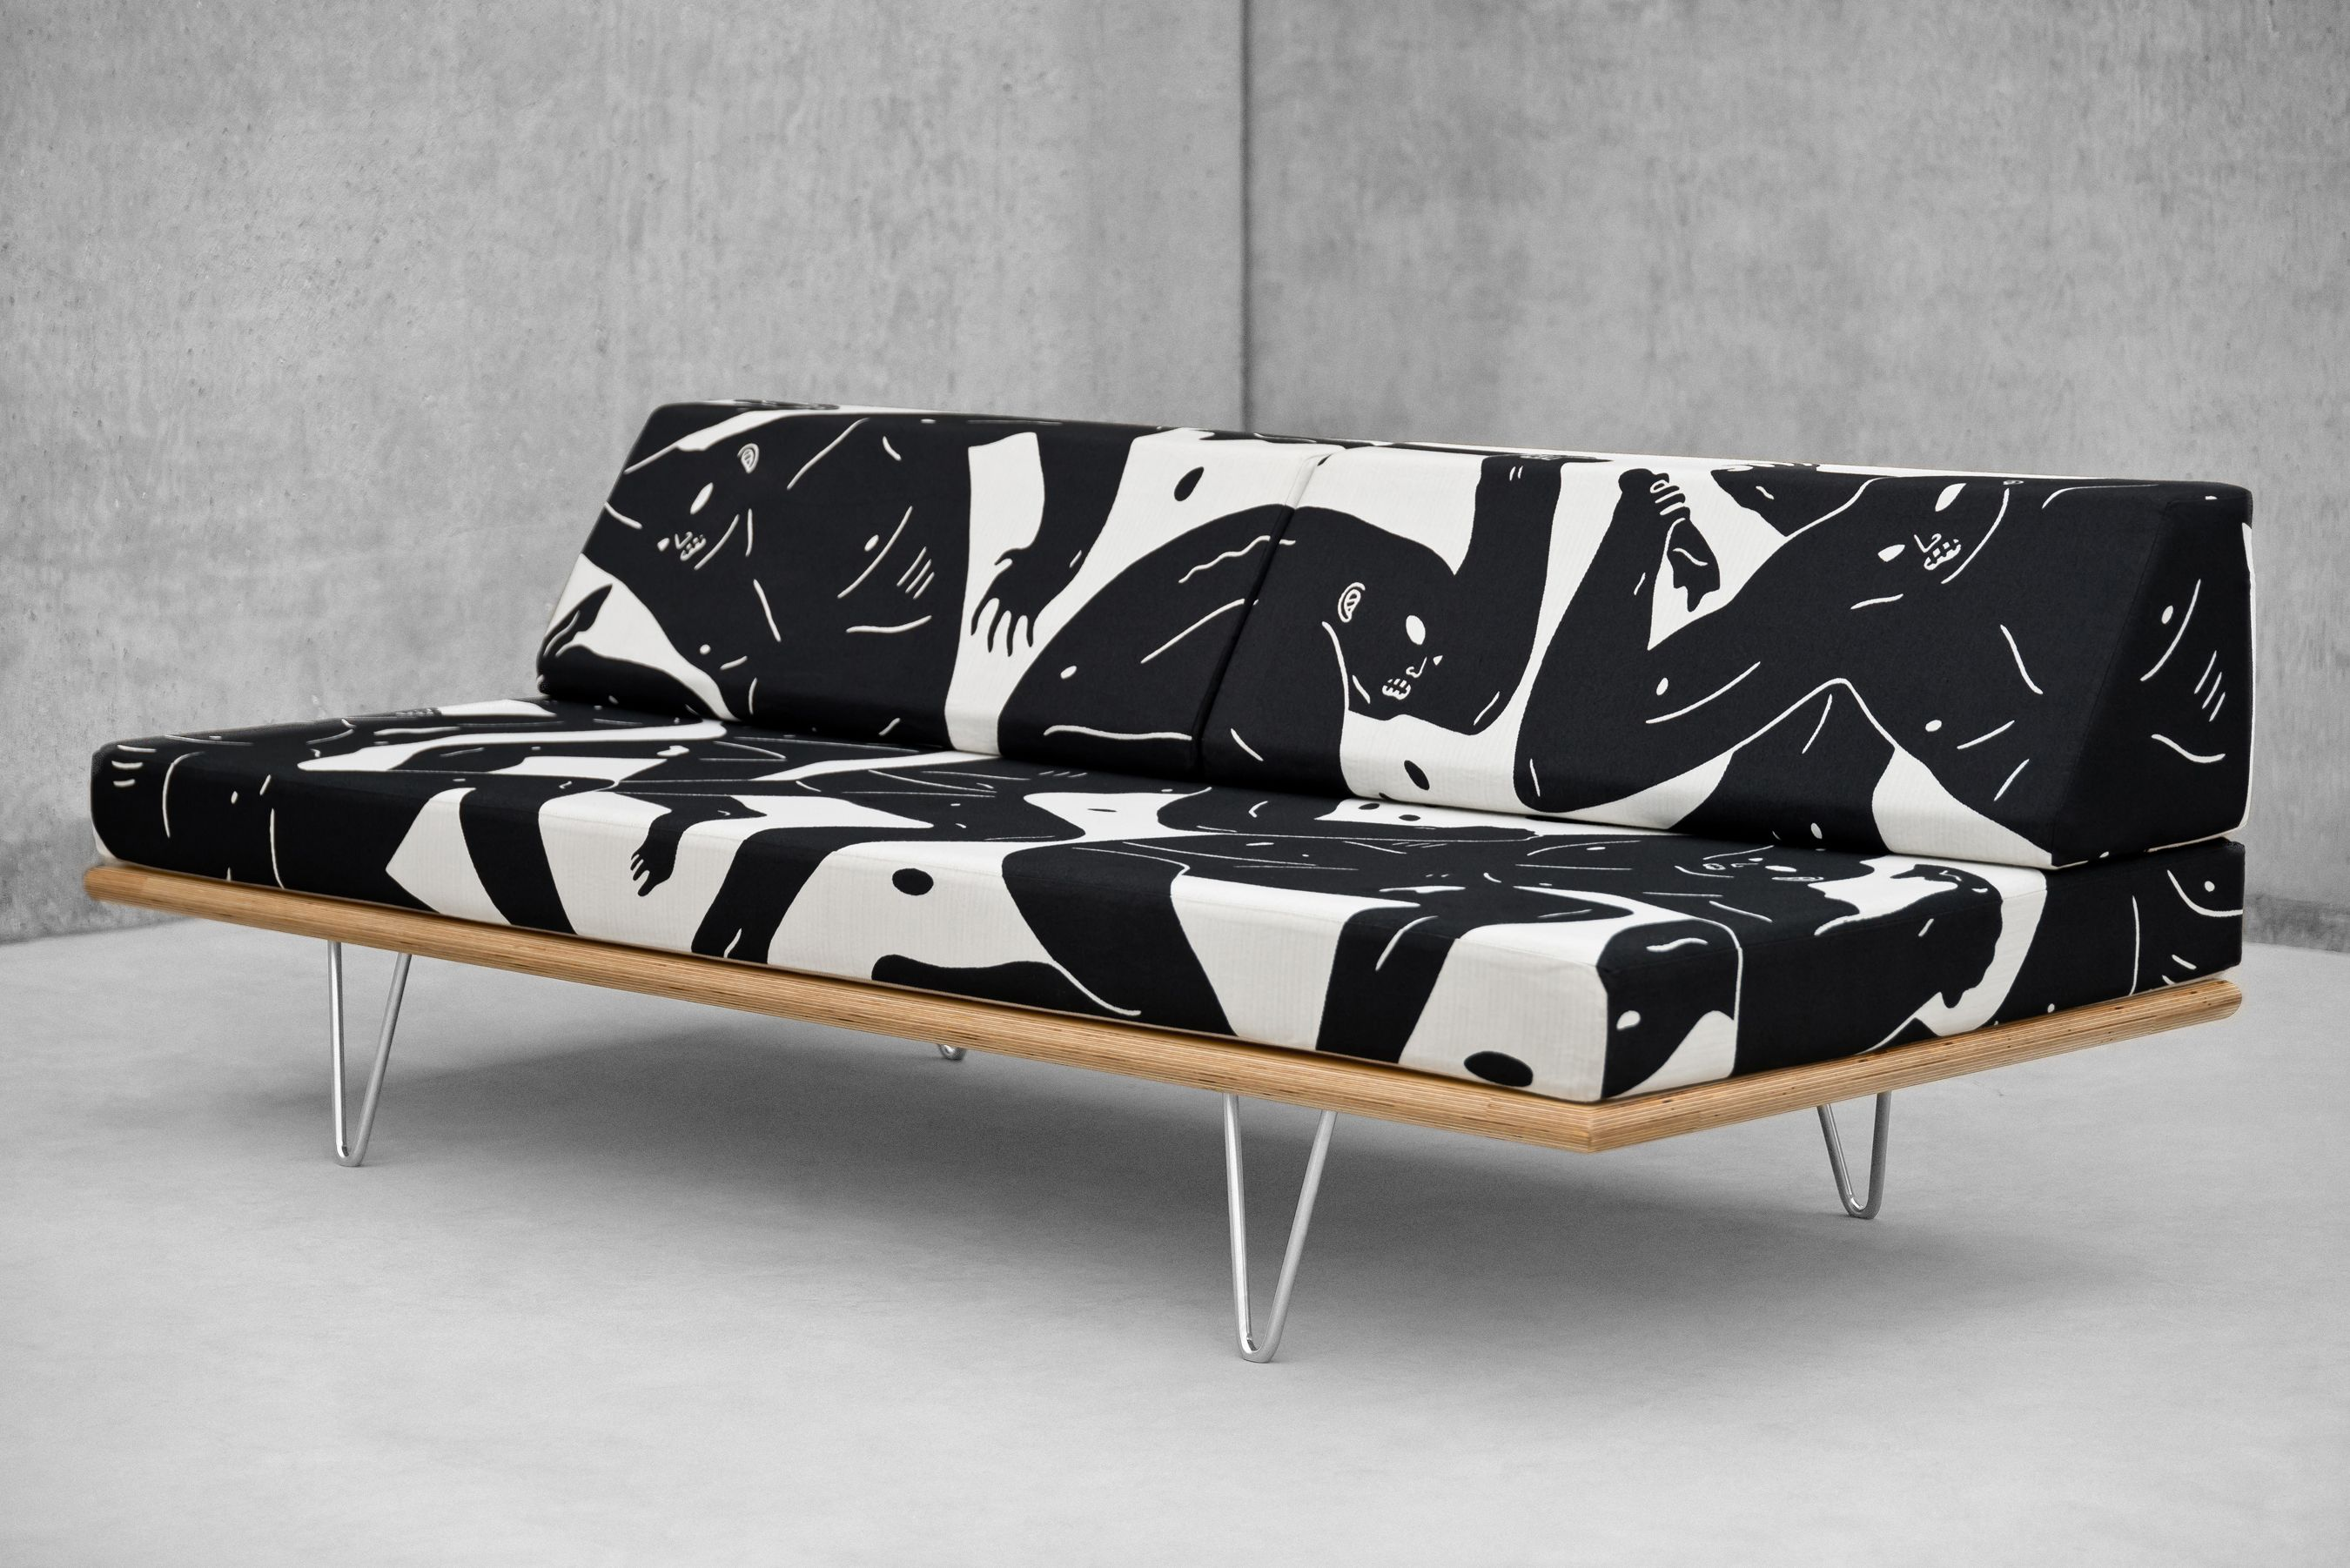 Meuble Coppin Cleon Peterson Daybed Objets Pinterest Daybed